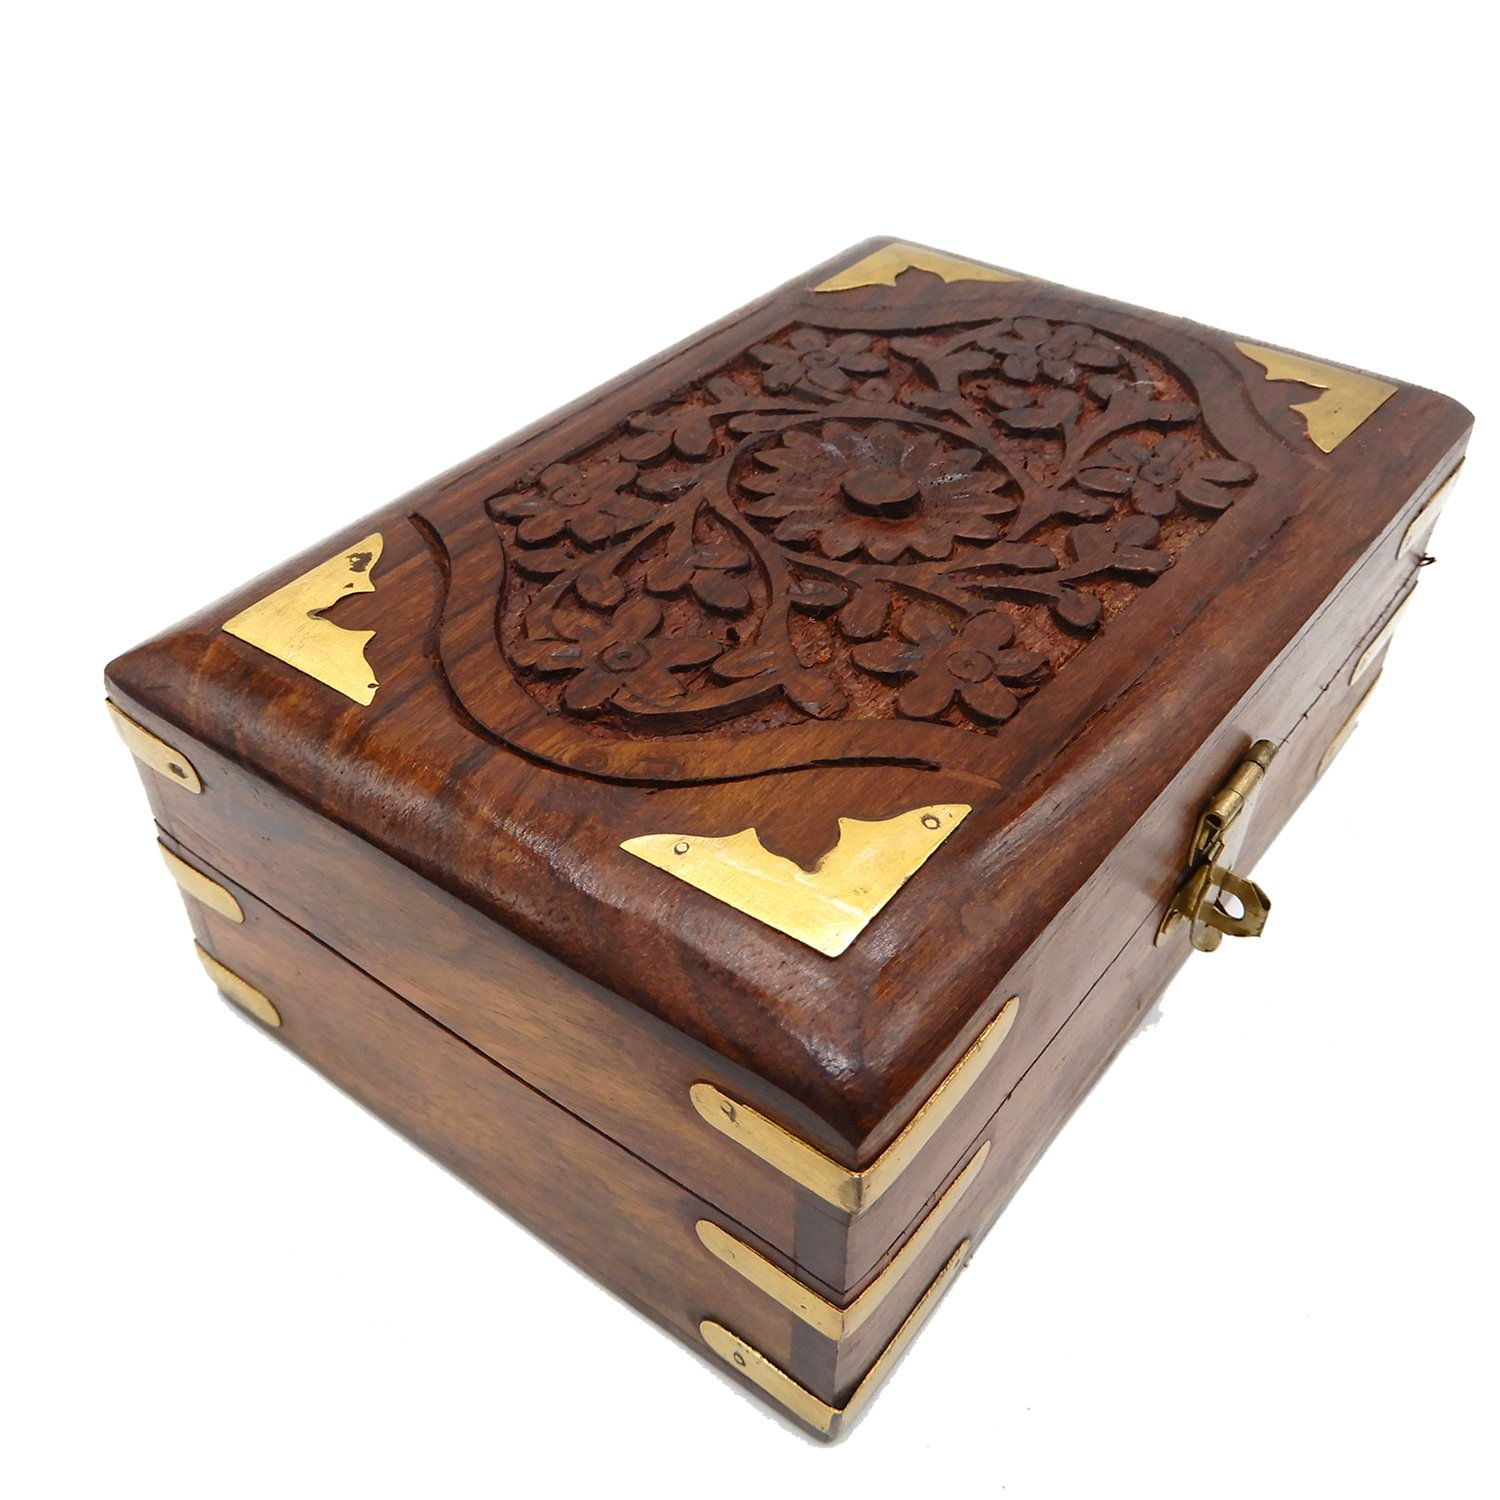 Khandekar (with device of K) Handcrafted Decorative Wooden Jewelry Box Organizer with Floral Carvings/Elephant Brass Inlay and Velvet Interior 8 Inch PMK0511